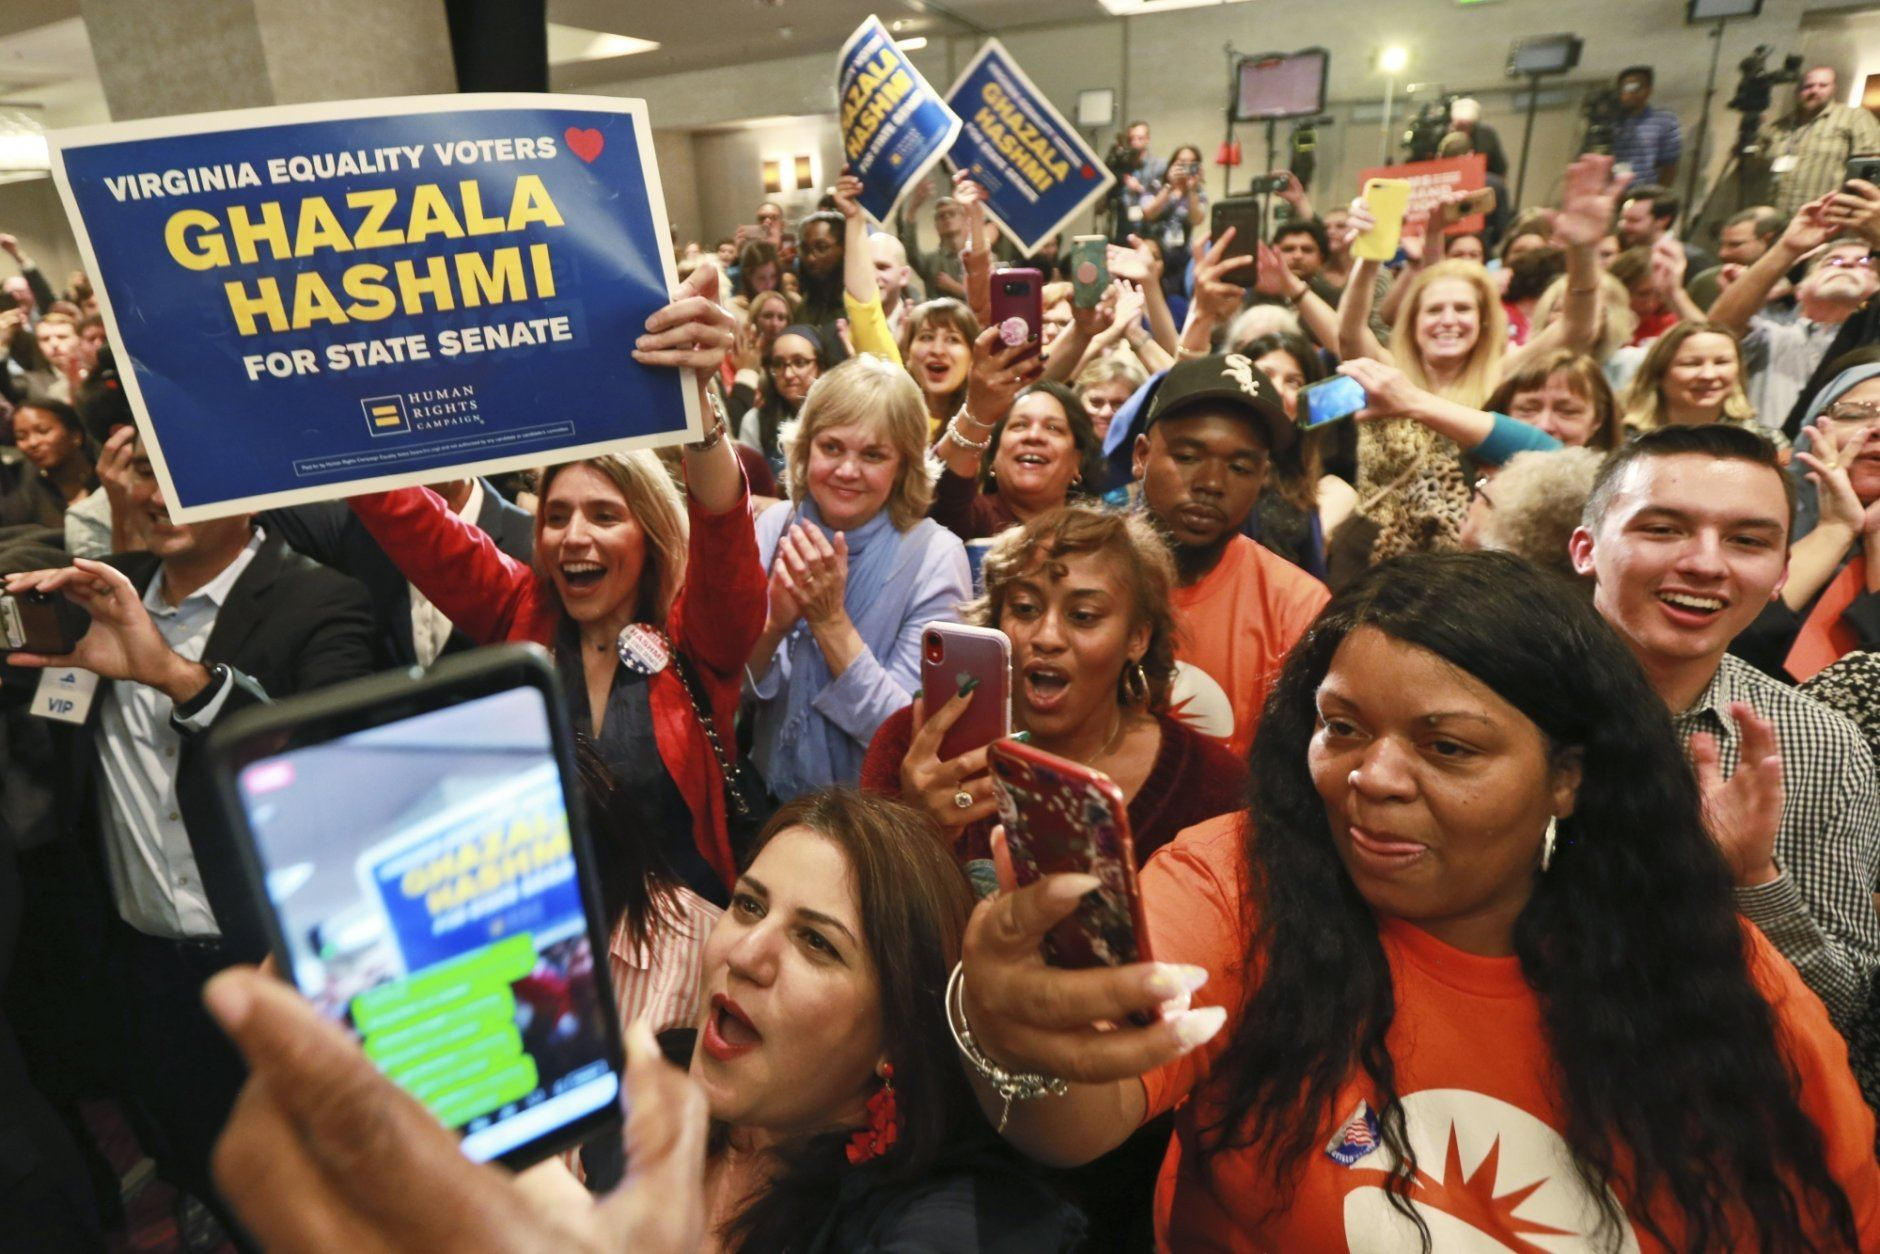 Democratic supporters cheer at their party in Richmond, Va., Tuesday, Nov. 5, 2019. All seats in the Virginia House of Delegates and State Senate are up for election. (AP Photo/Steve Helber)